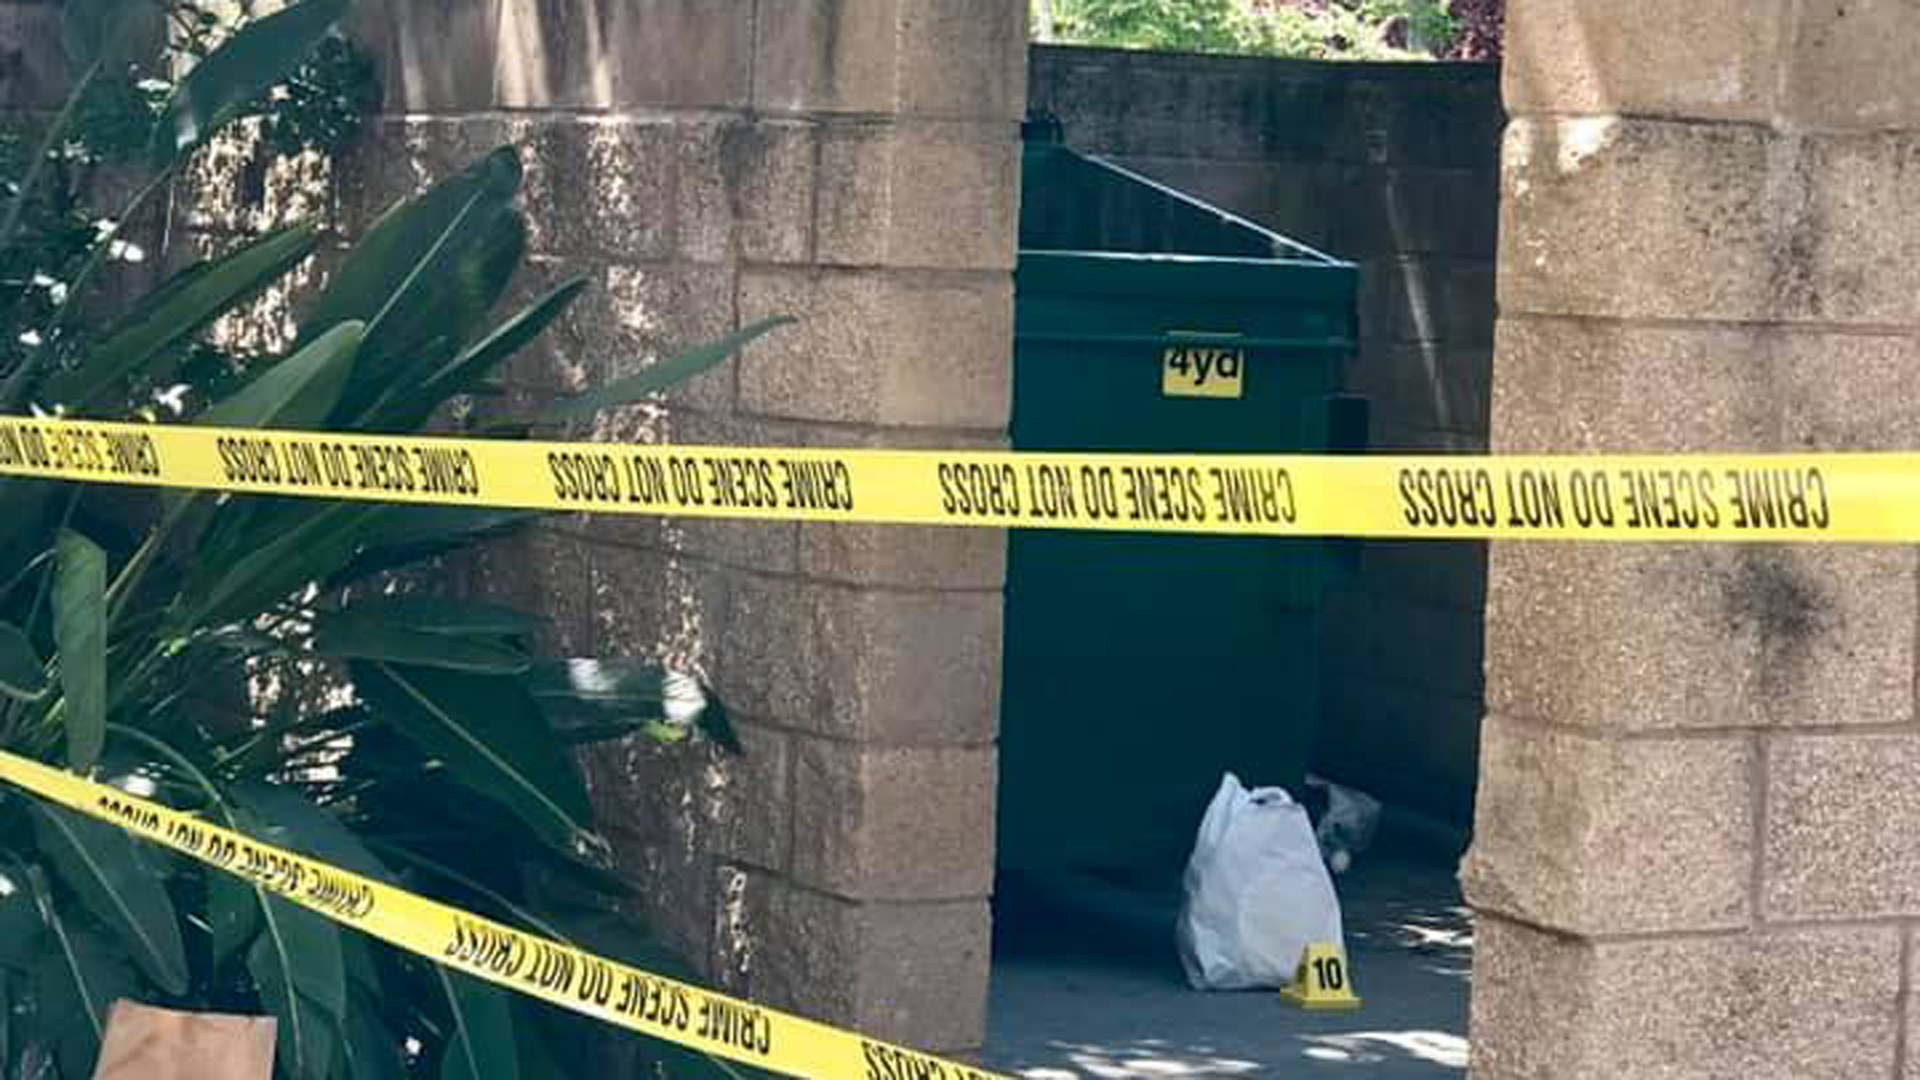 Stockton police released this photo of the dumpster where a newborn baby was rescued on June 11, 2019.